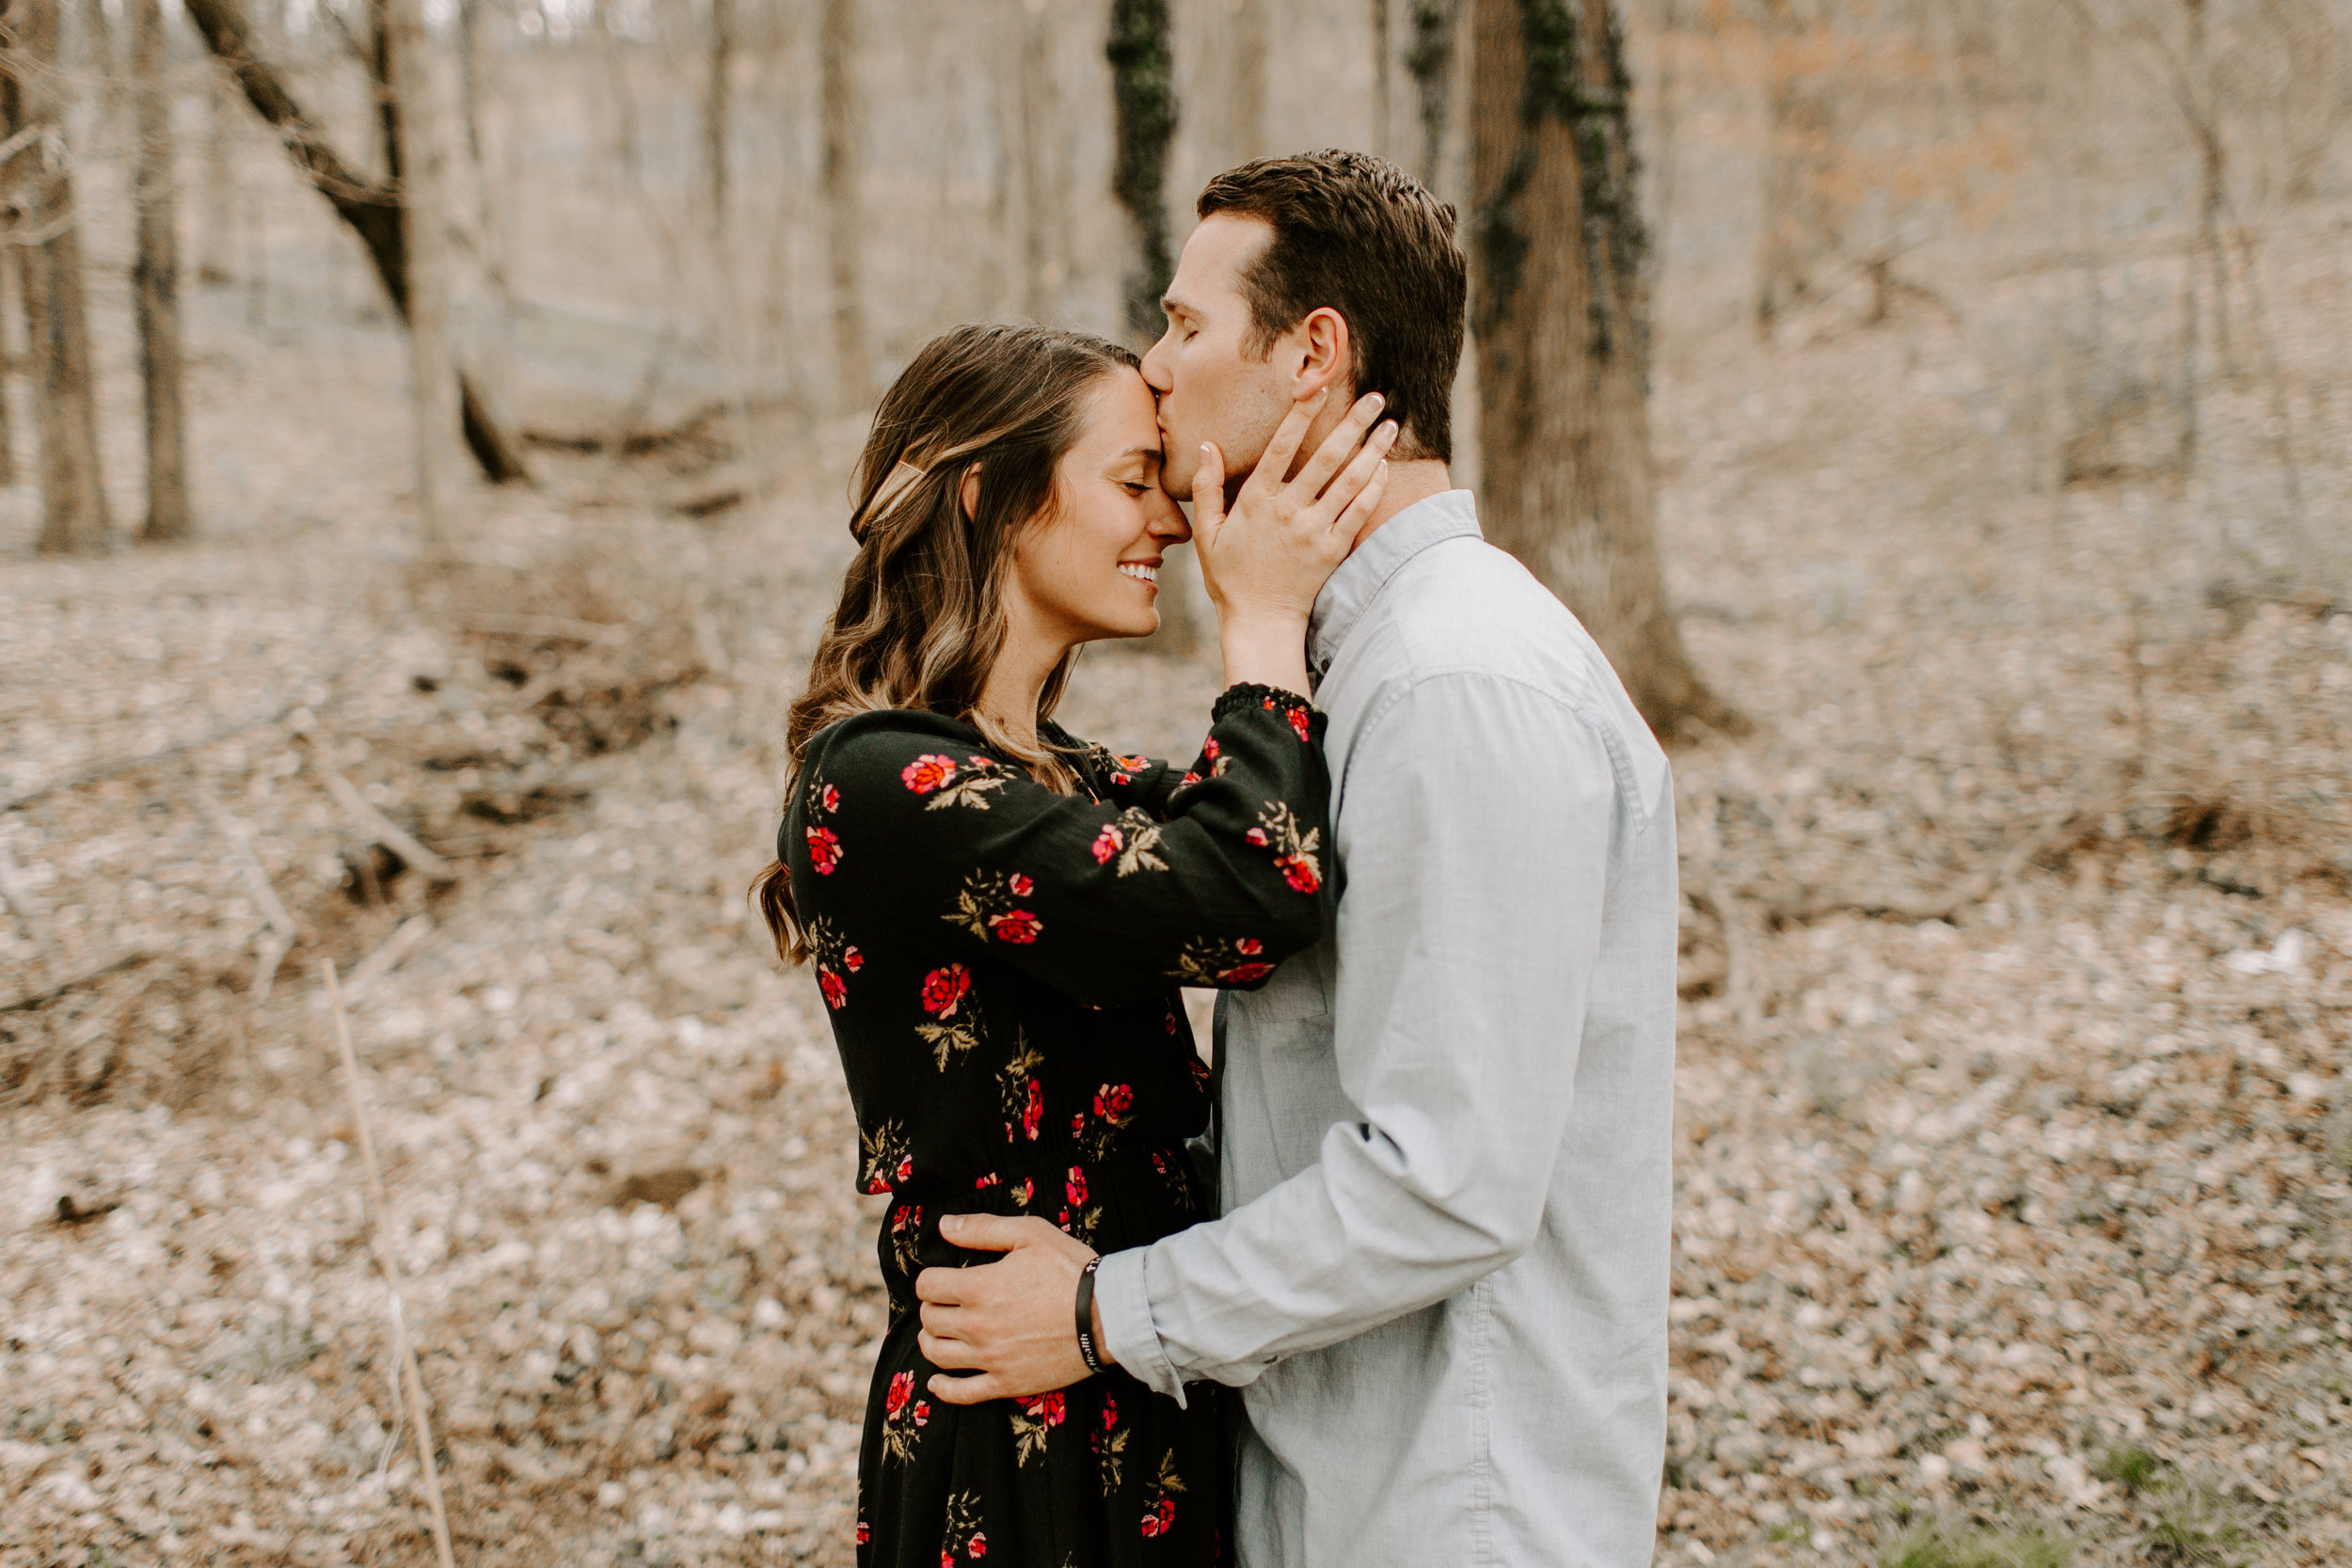 2018.03.16_kayleematt_nashville_engagement_elissavossphotography_previews_08.jpg